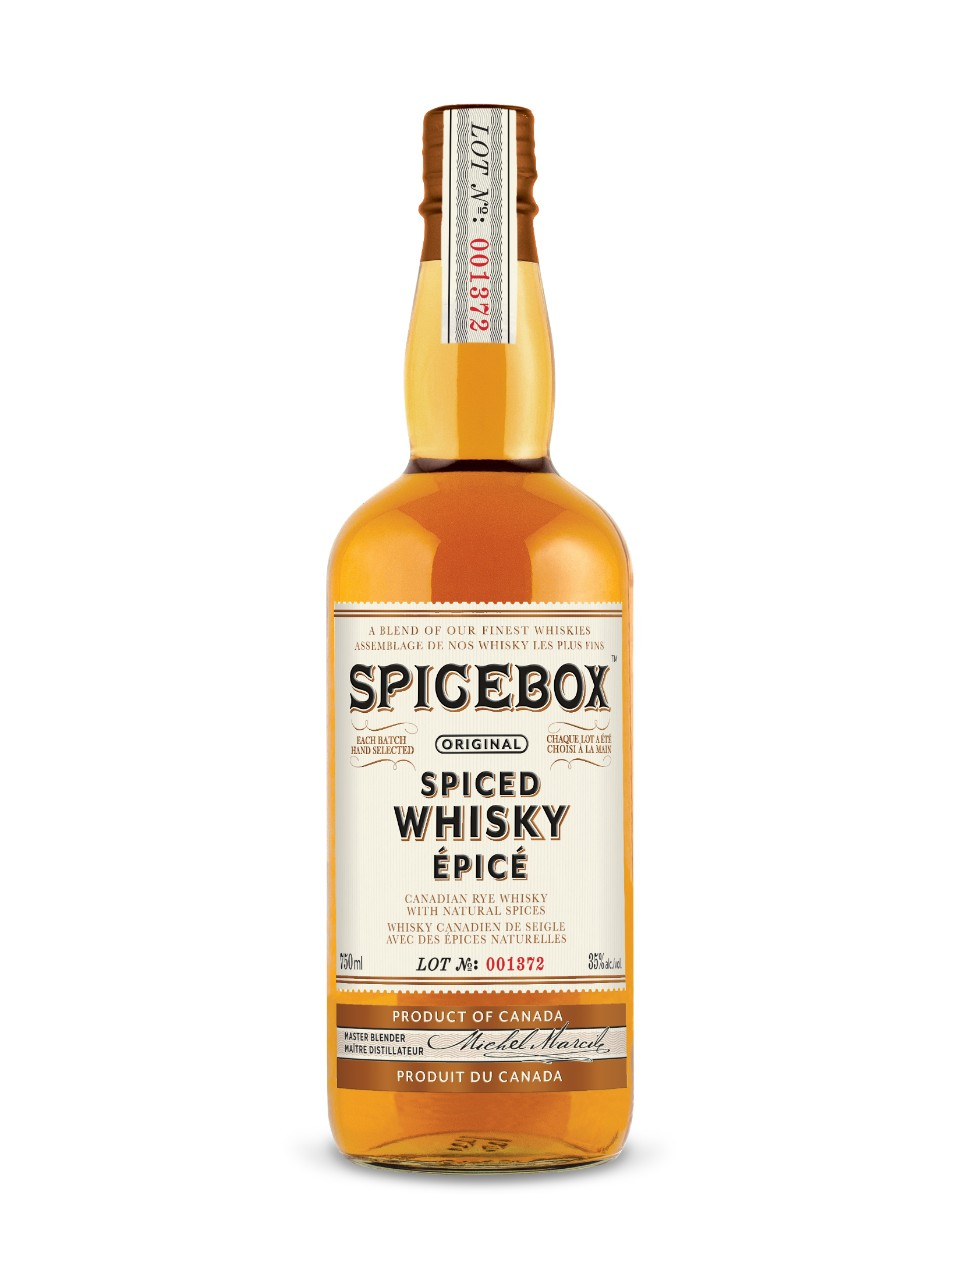 Spicebox Canadian Spiced Whisky from LCBO